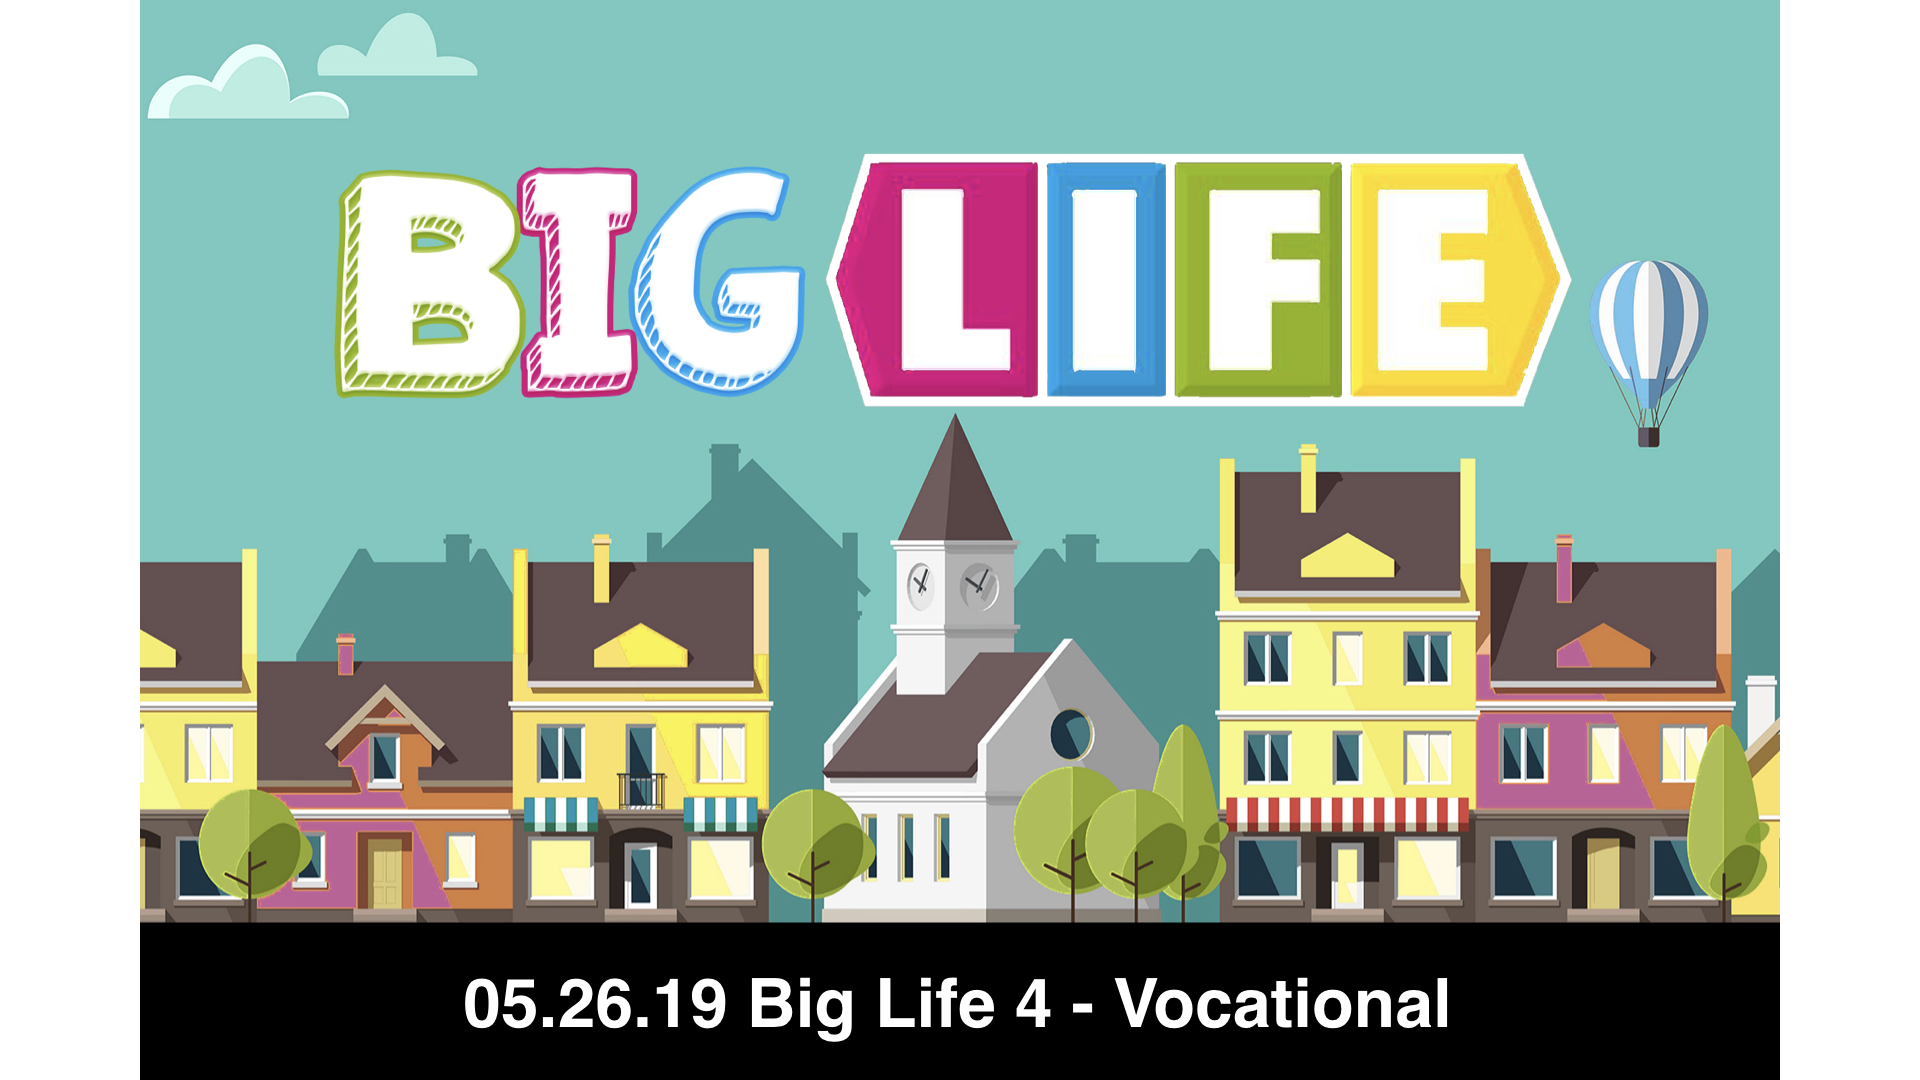 05-26-19 Big Life 4 - Vocationally